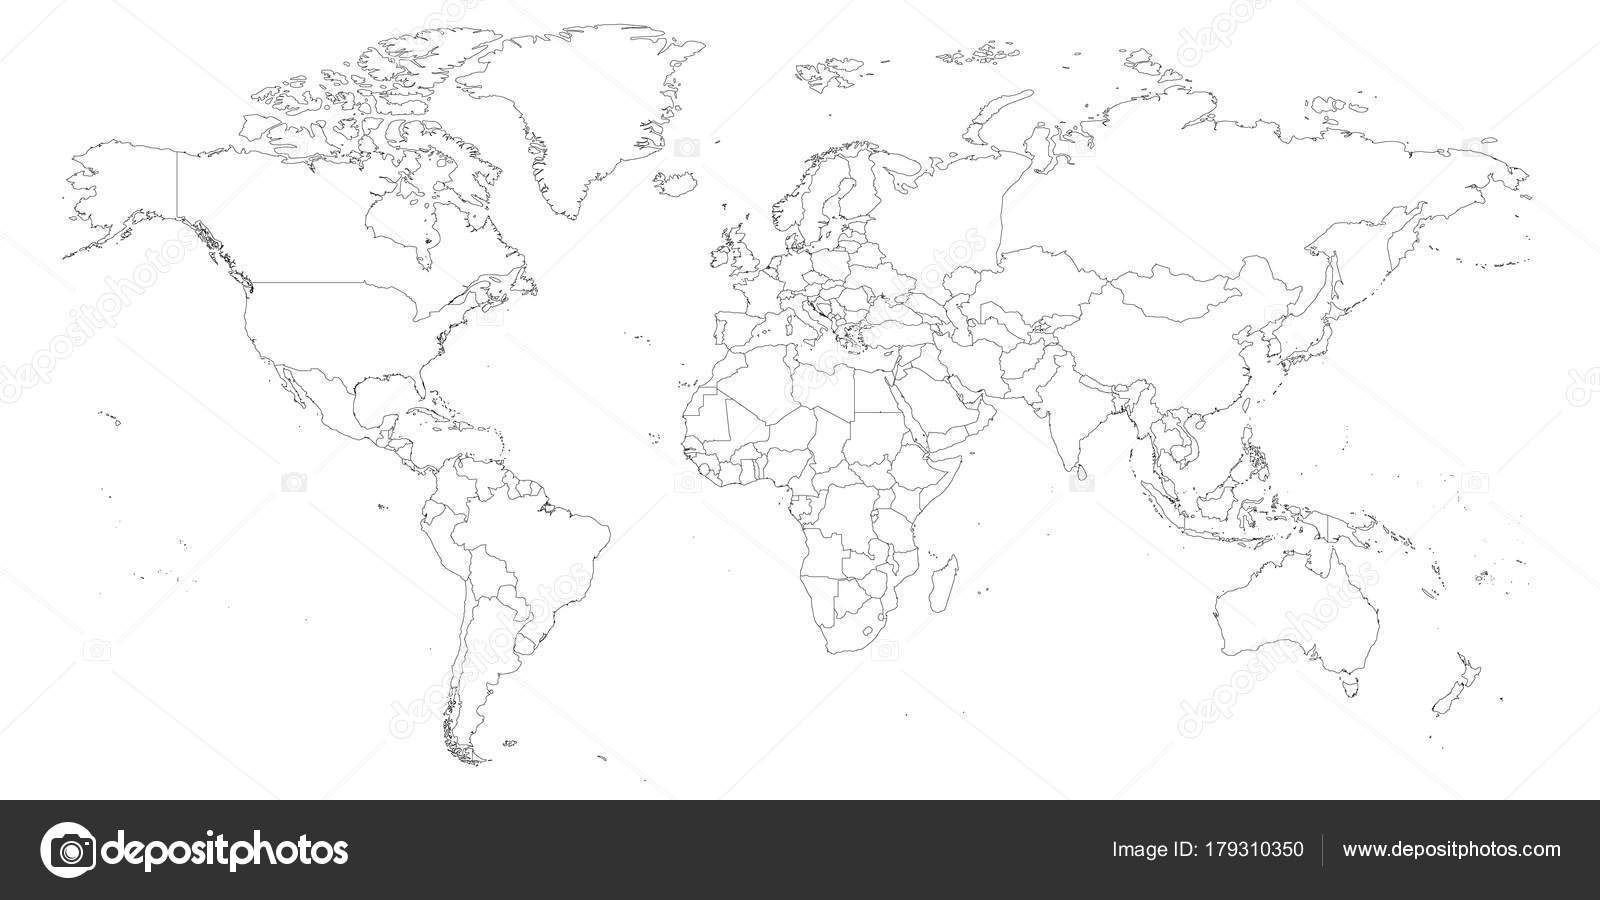 Blank outline map of world worksheet for geography teachers usable blank outline map of world worksheet for geography teachers usable as geographical test in school gumiabroncs Image collections